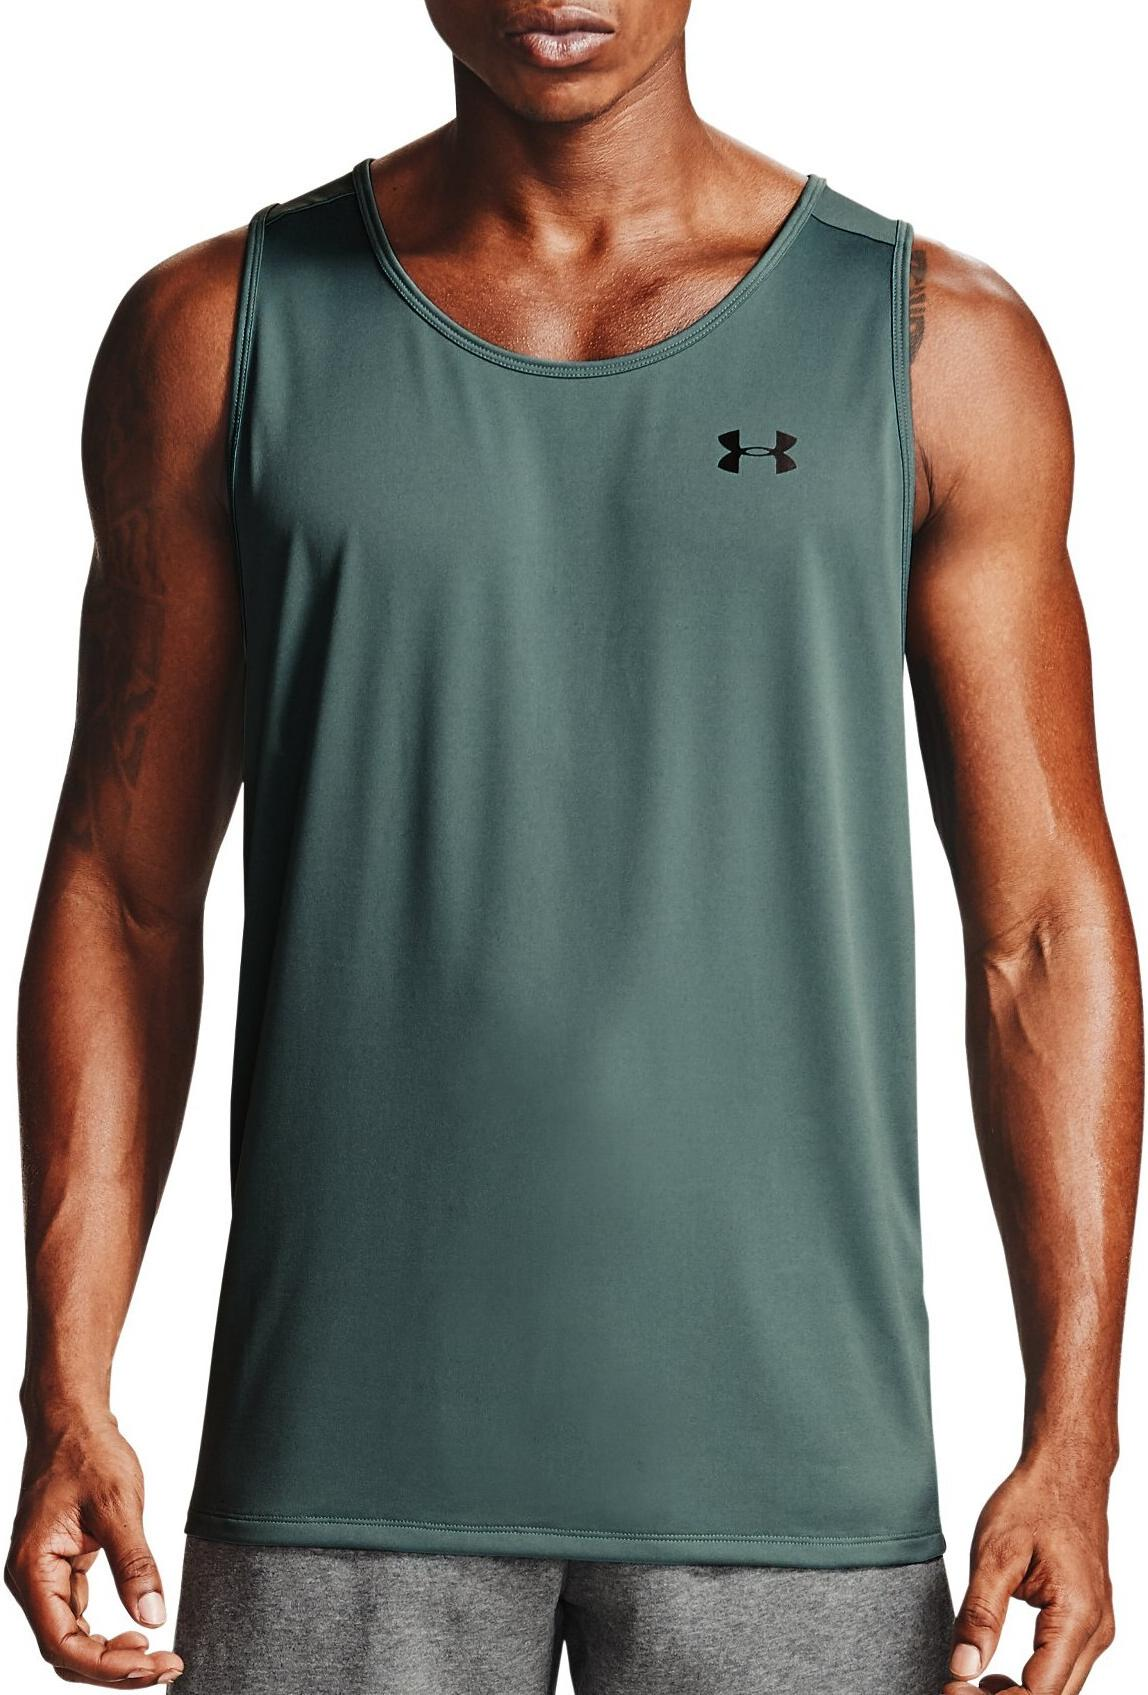 Tank top Under Armour UA Tech 2.0 Tank